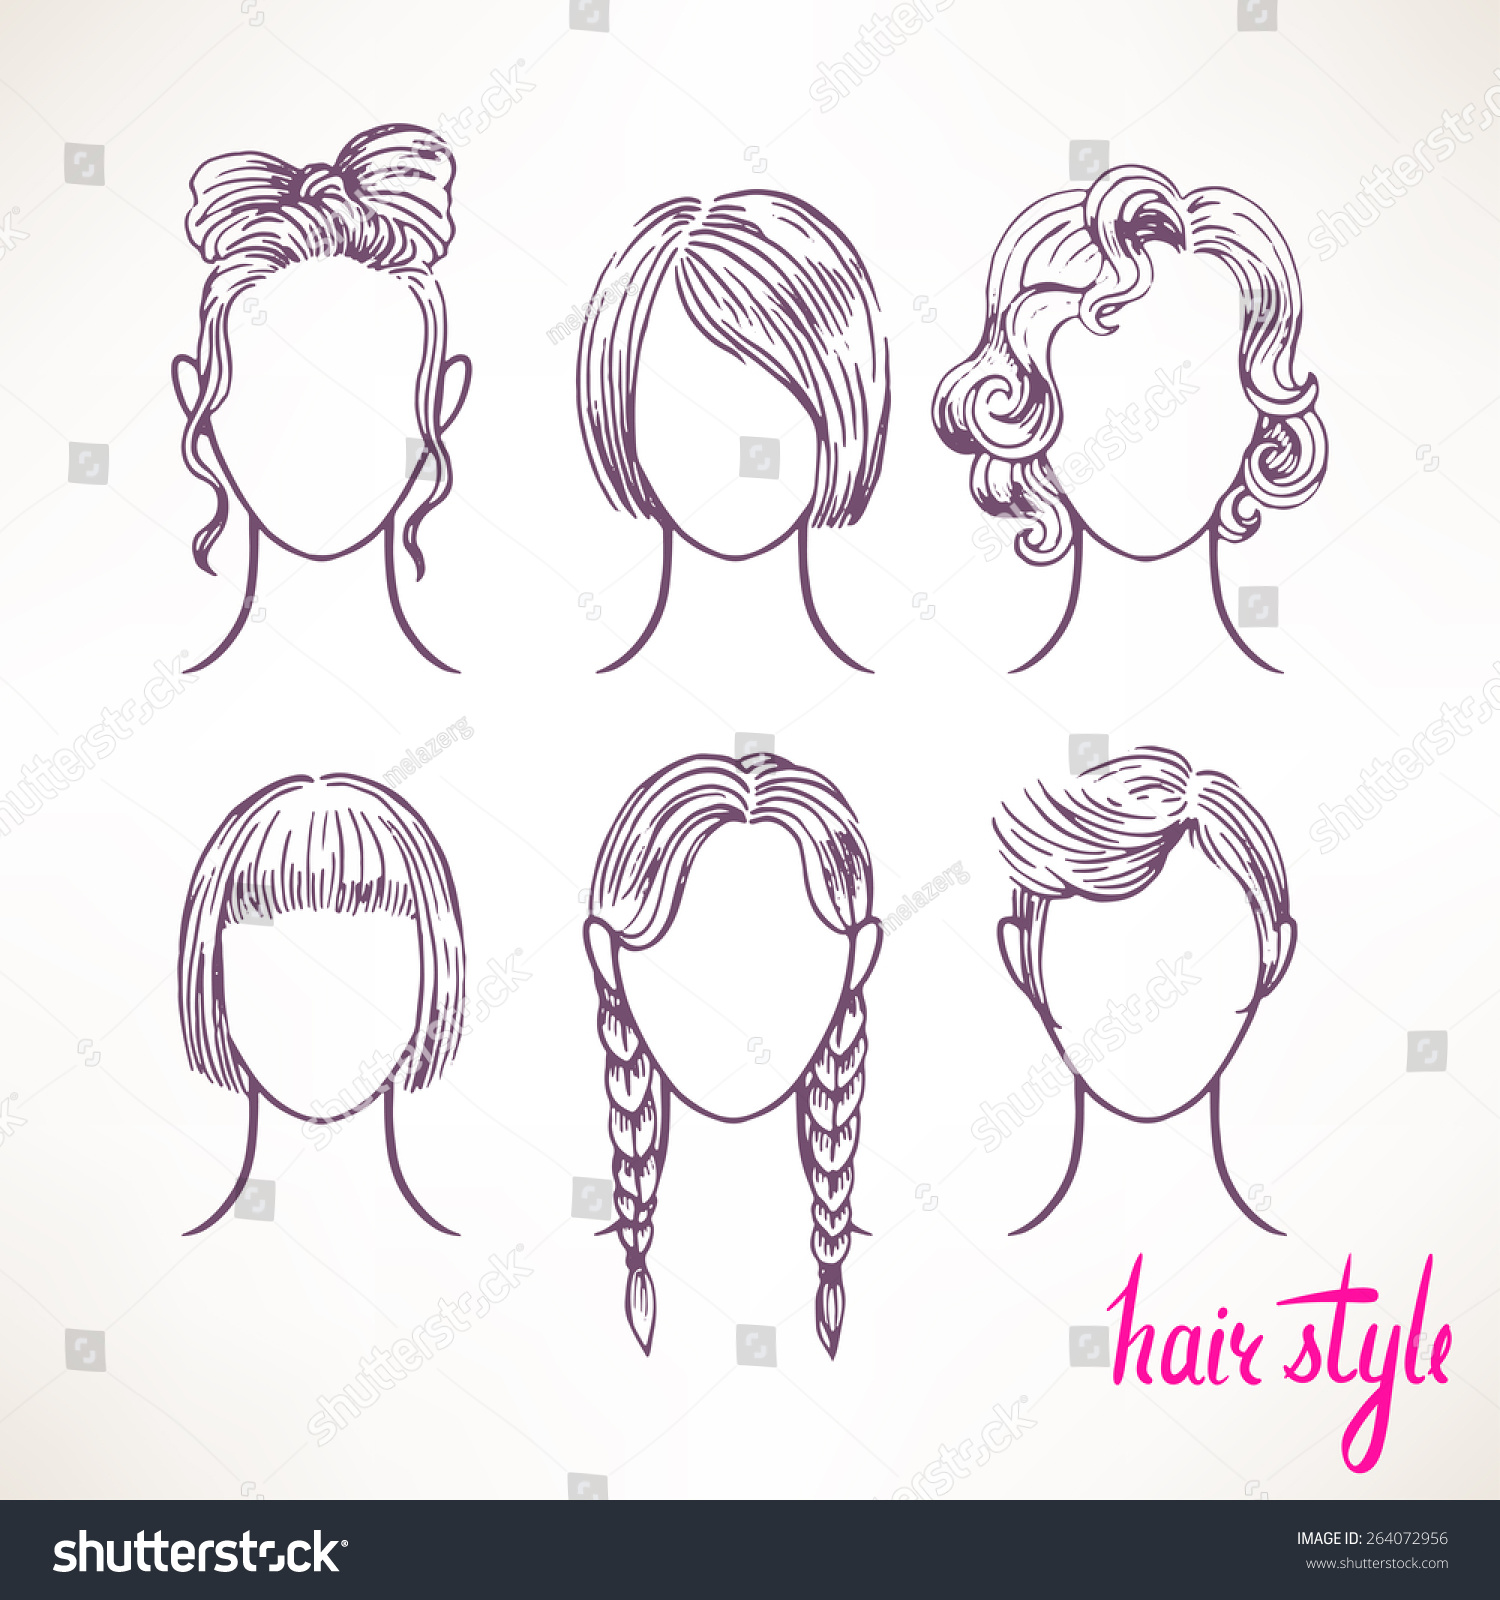 Set Different Hairstyles Handdrawn Illustration Stock Vector - Different hair style drawing